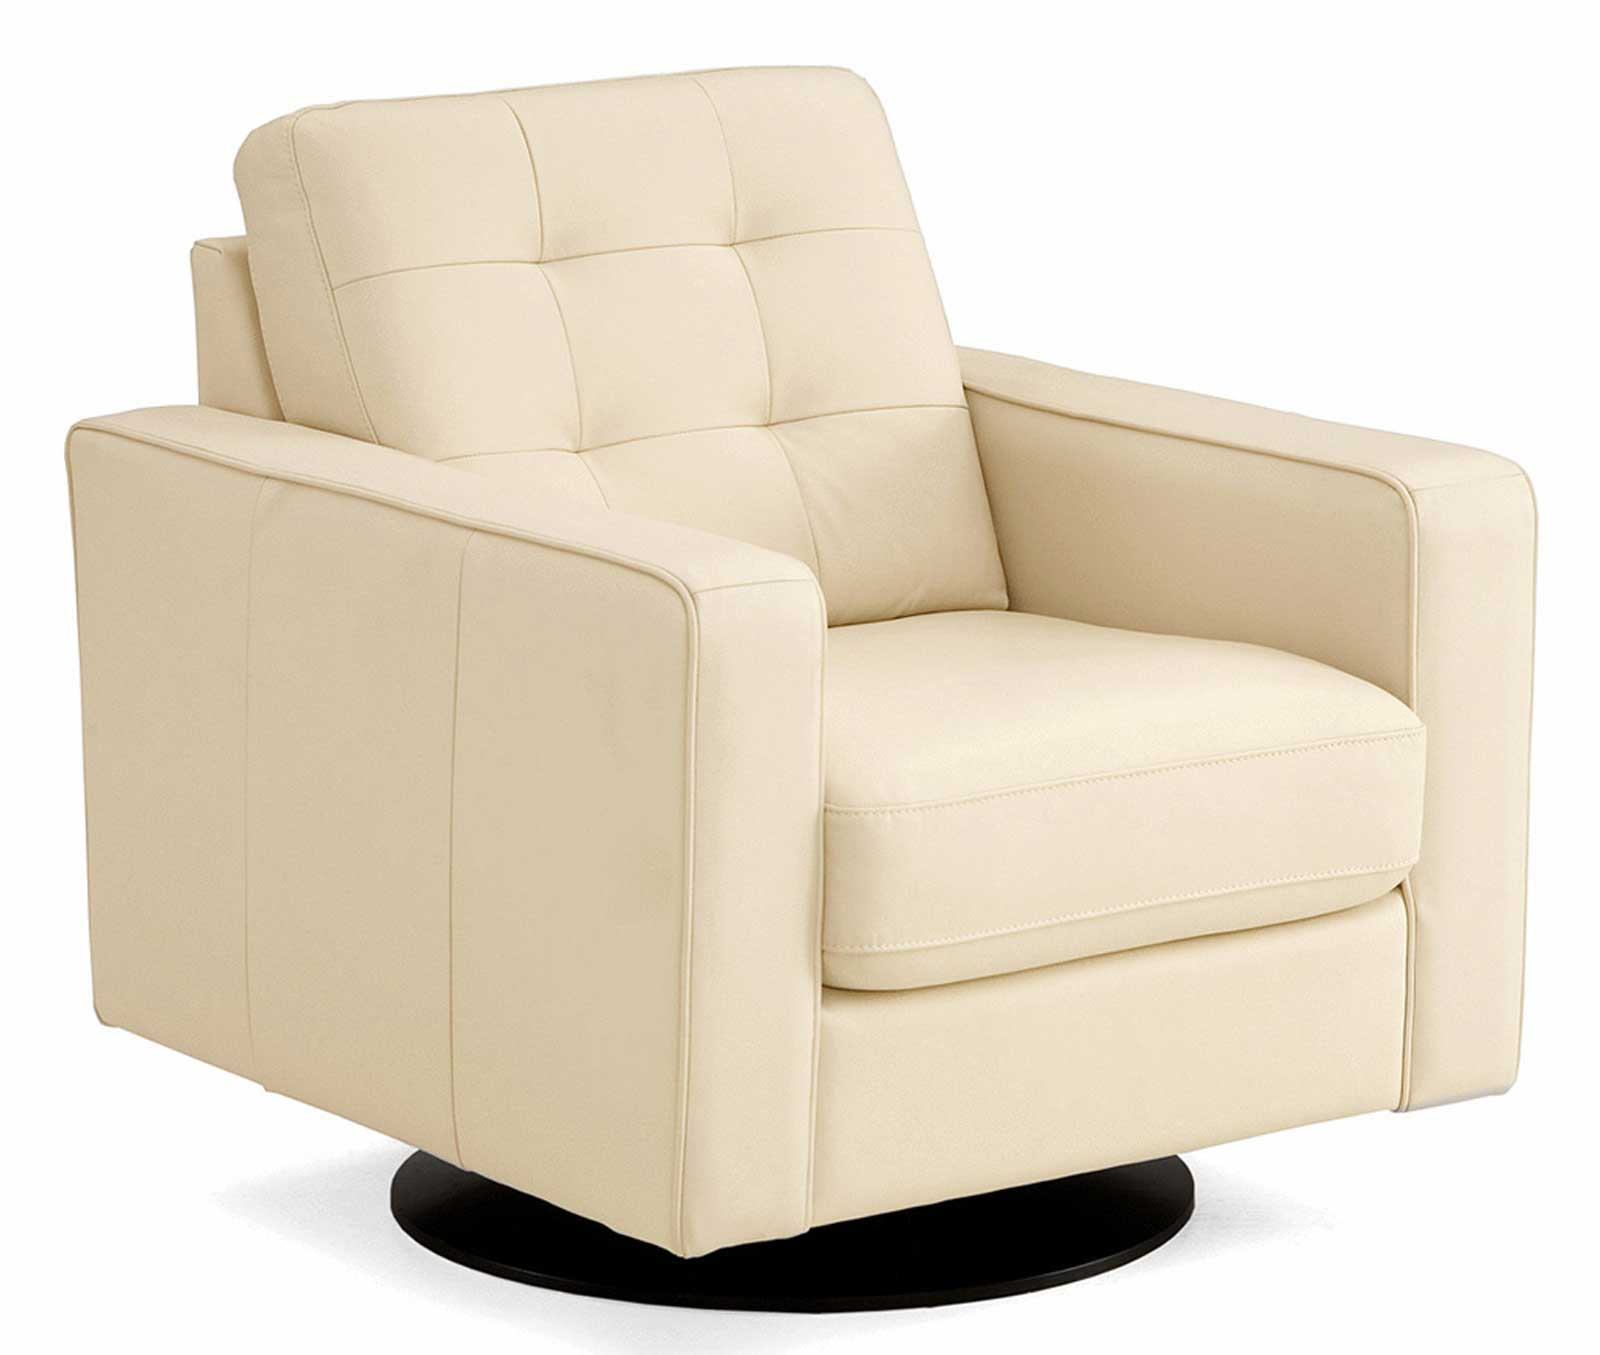 Swivel Chairs Living Room Furniture Office Furniture